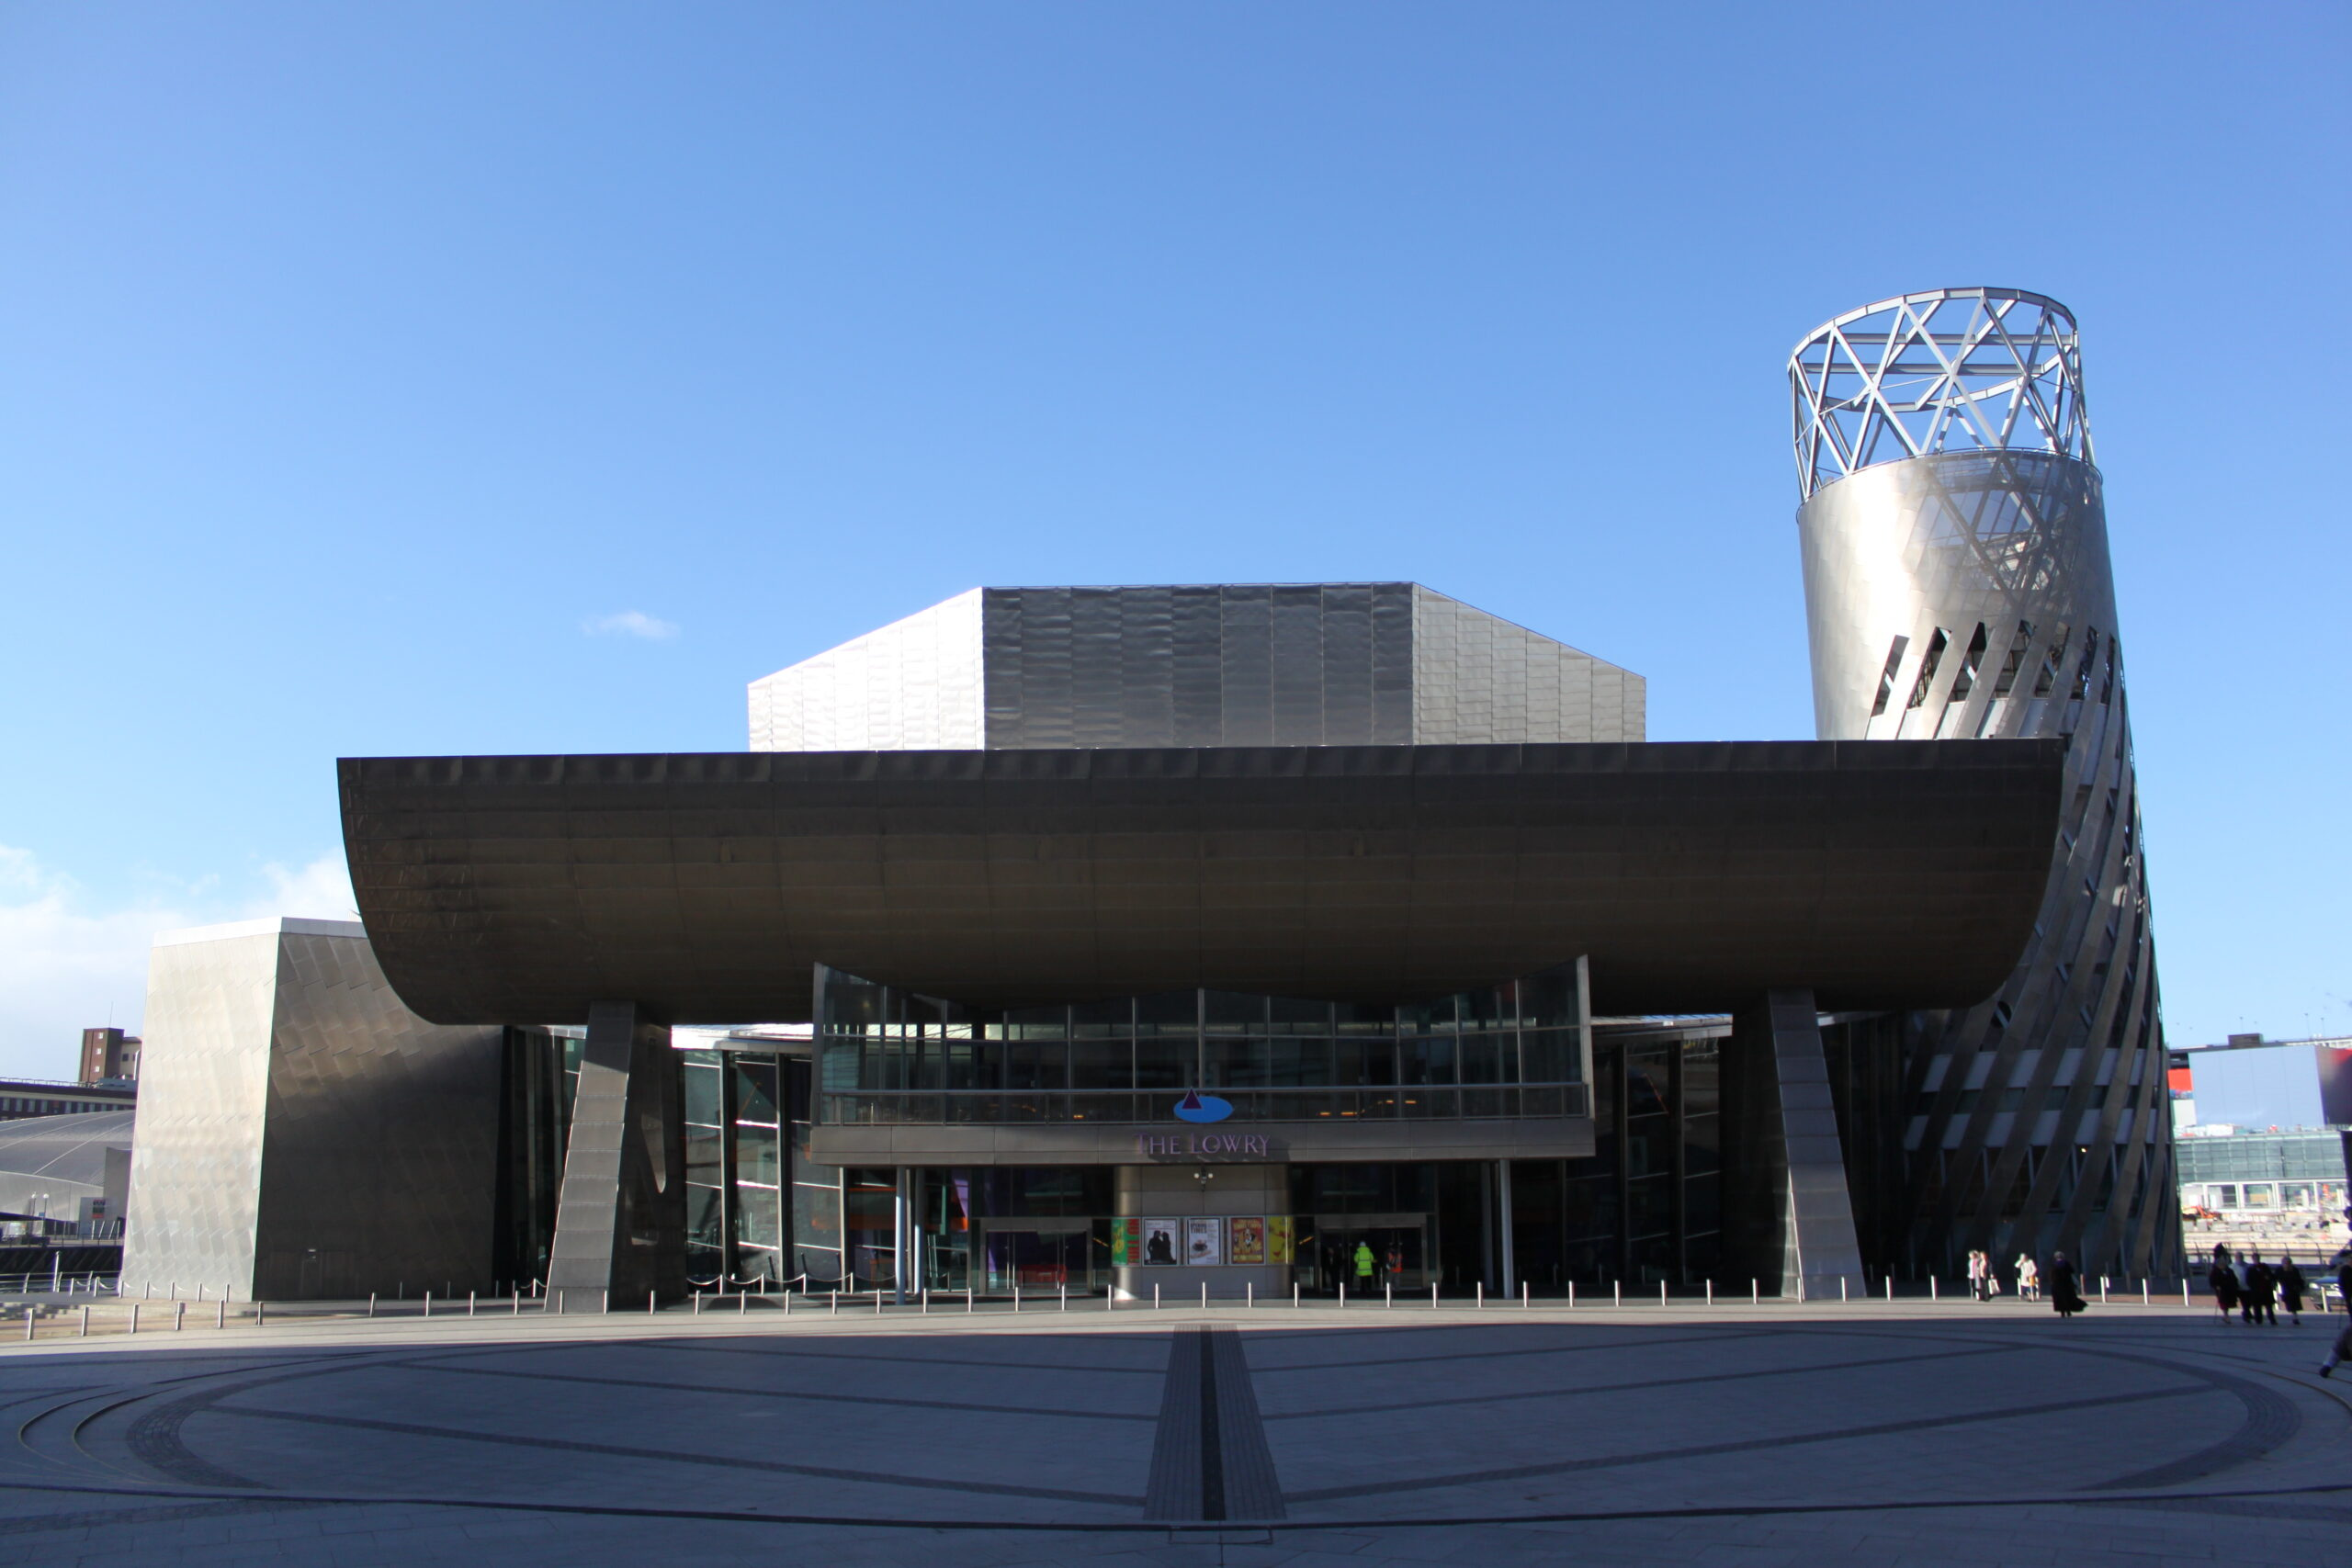 Best Manchester Outdoor Theatres The Lowry C-O-N-T-A-C-T